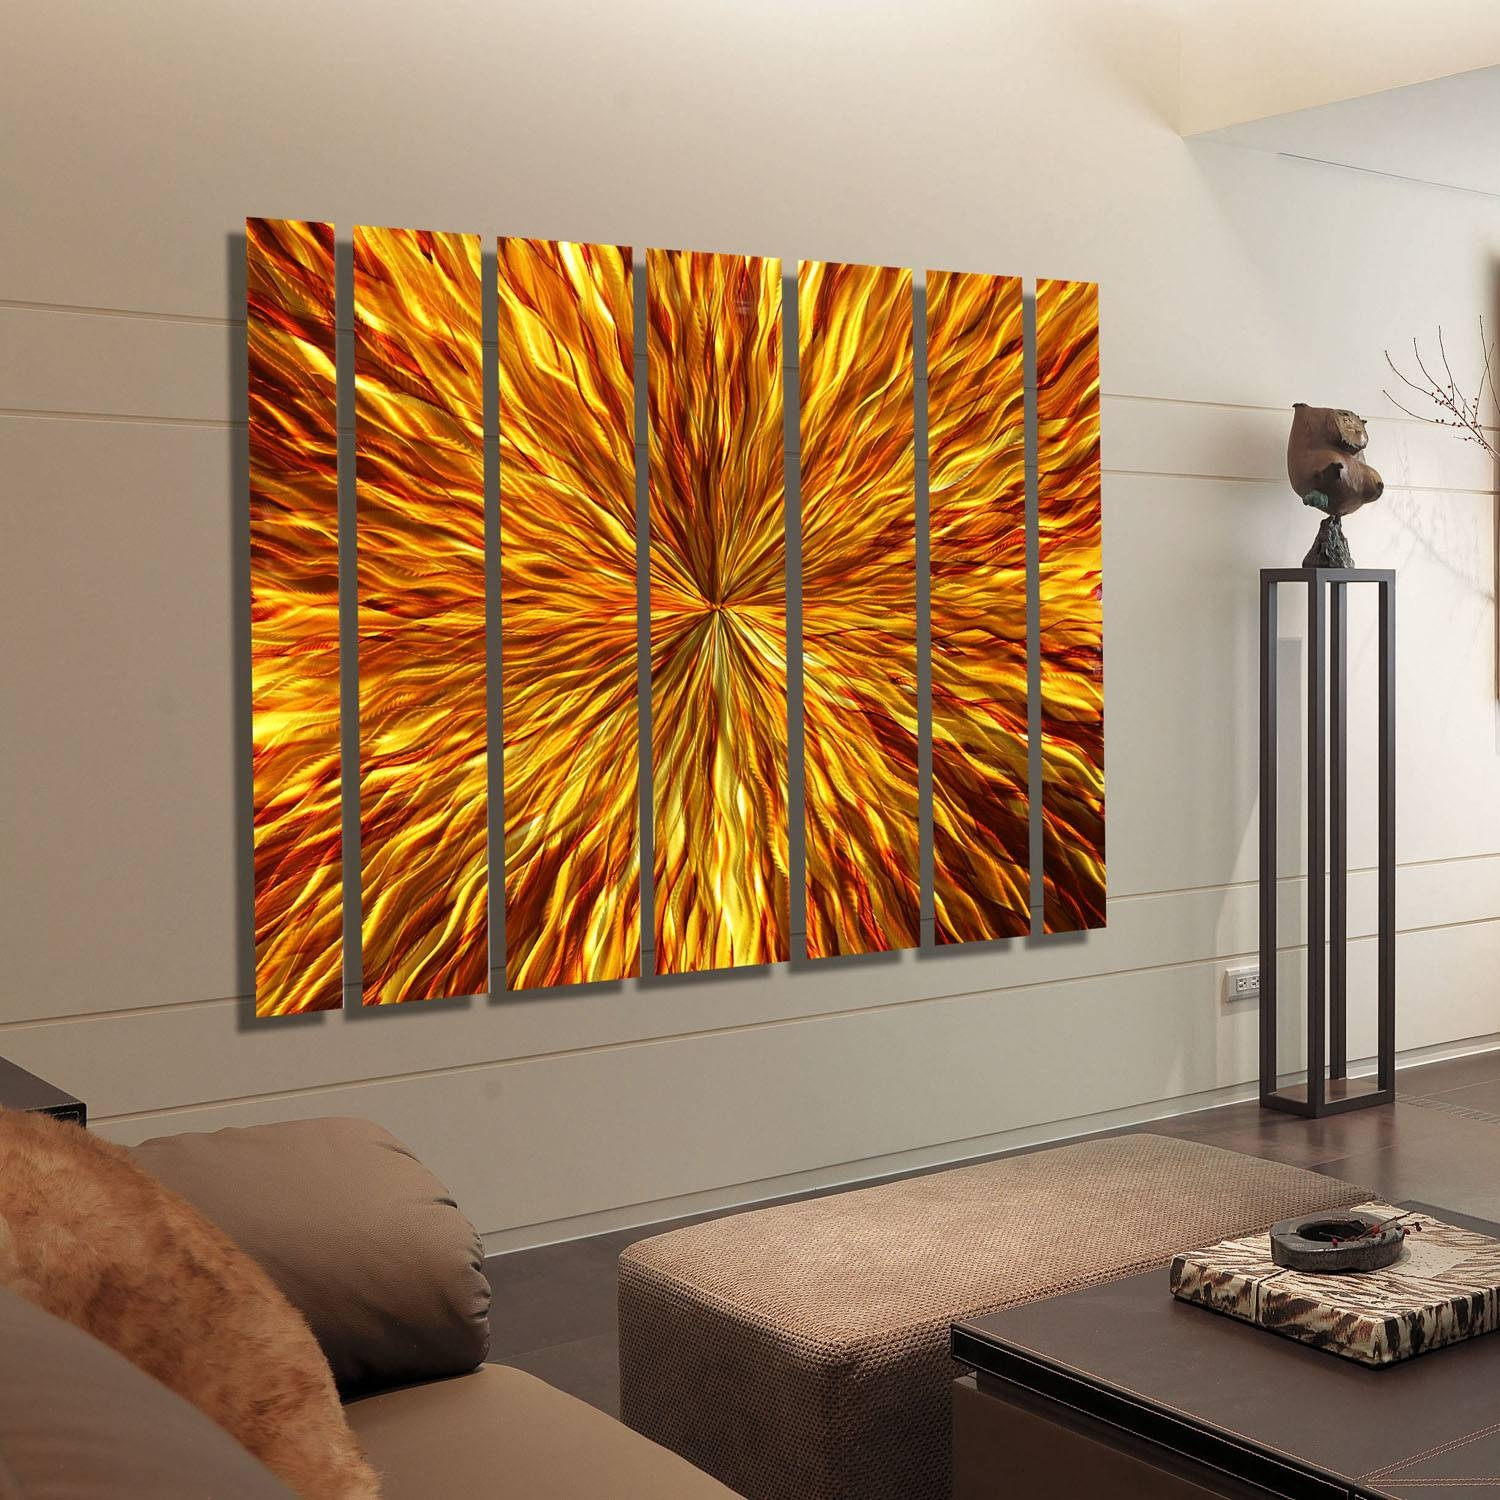 Amber Vortex Xl – Extra Large Modern Metal Wall Artjon Allen Pertaining To Most Up To Date Oversized Metal Wall Art (View 2 of 20)